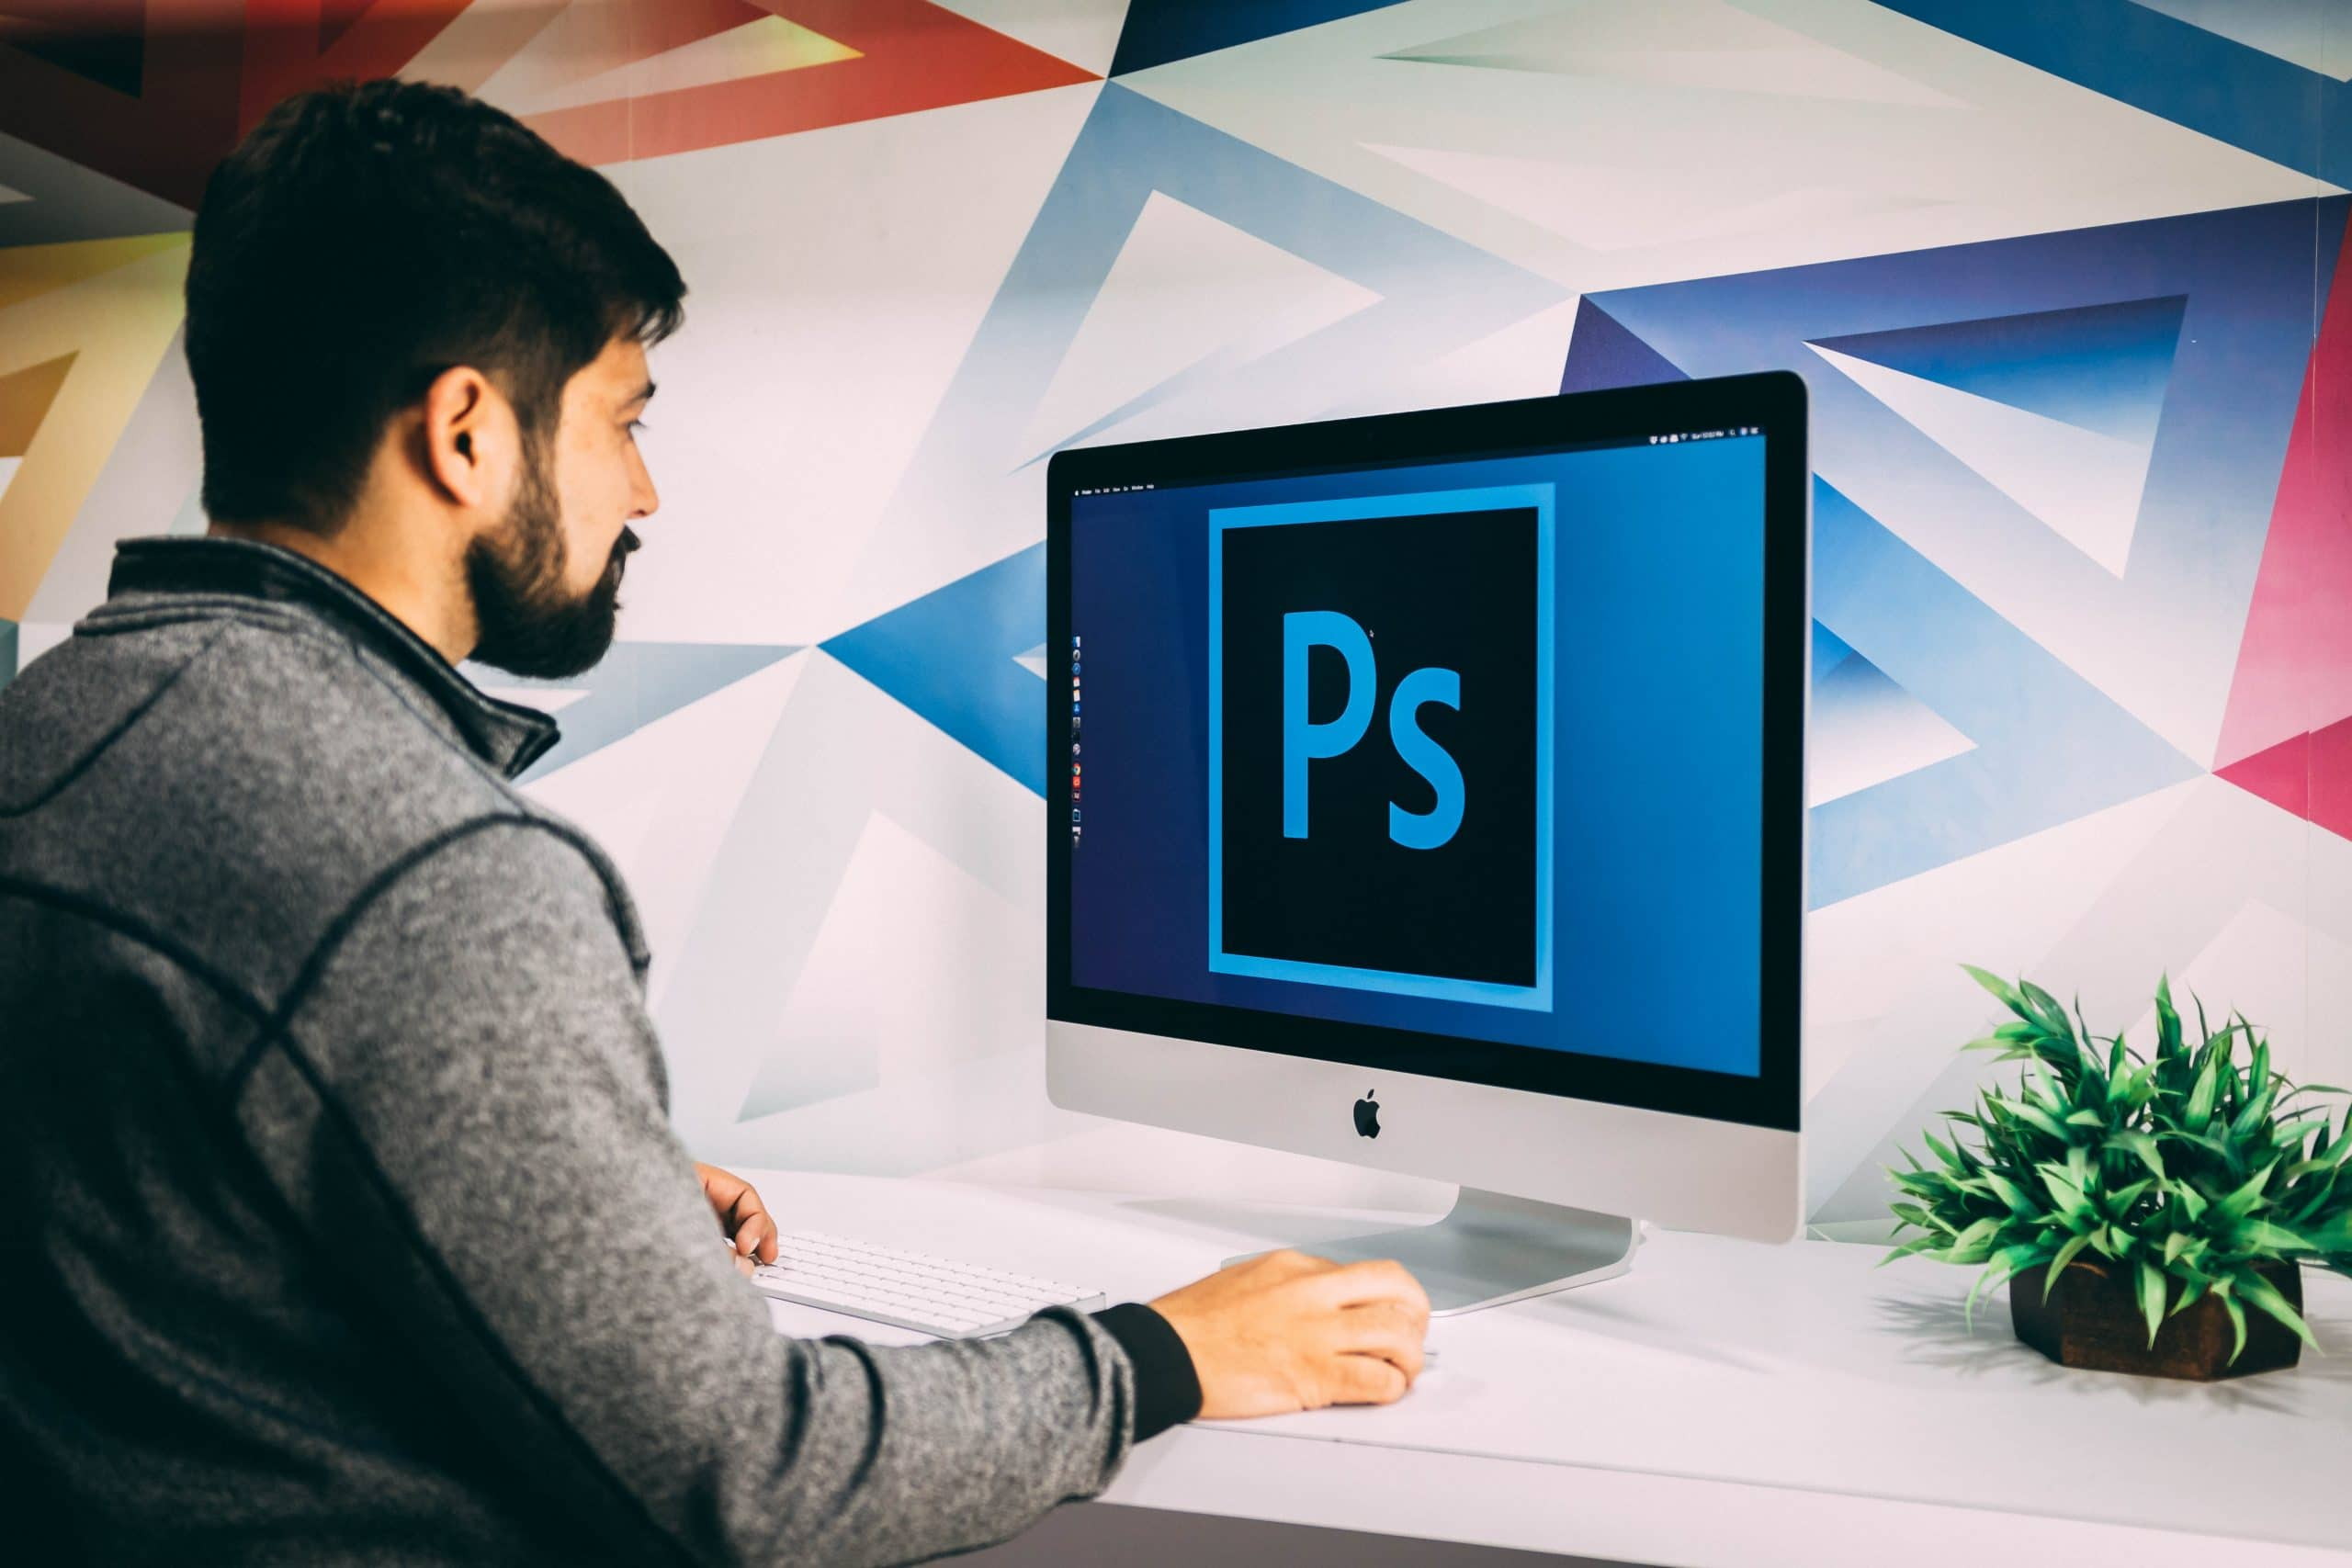 Man using Photoshop - How to Remove an Object in Photoshop